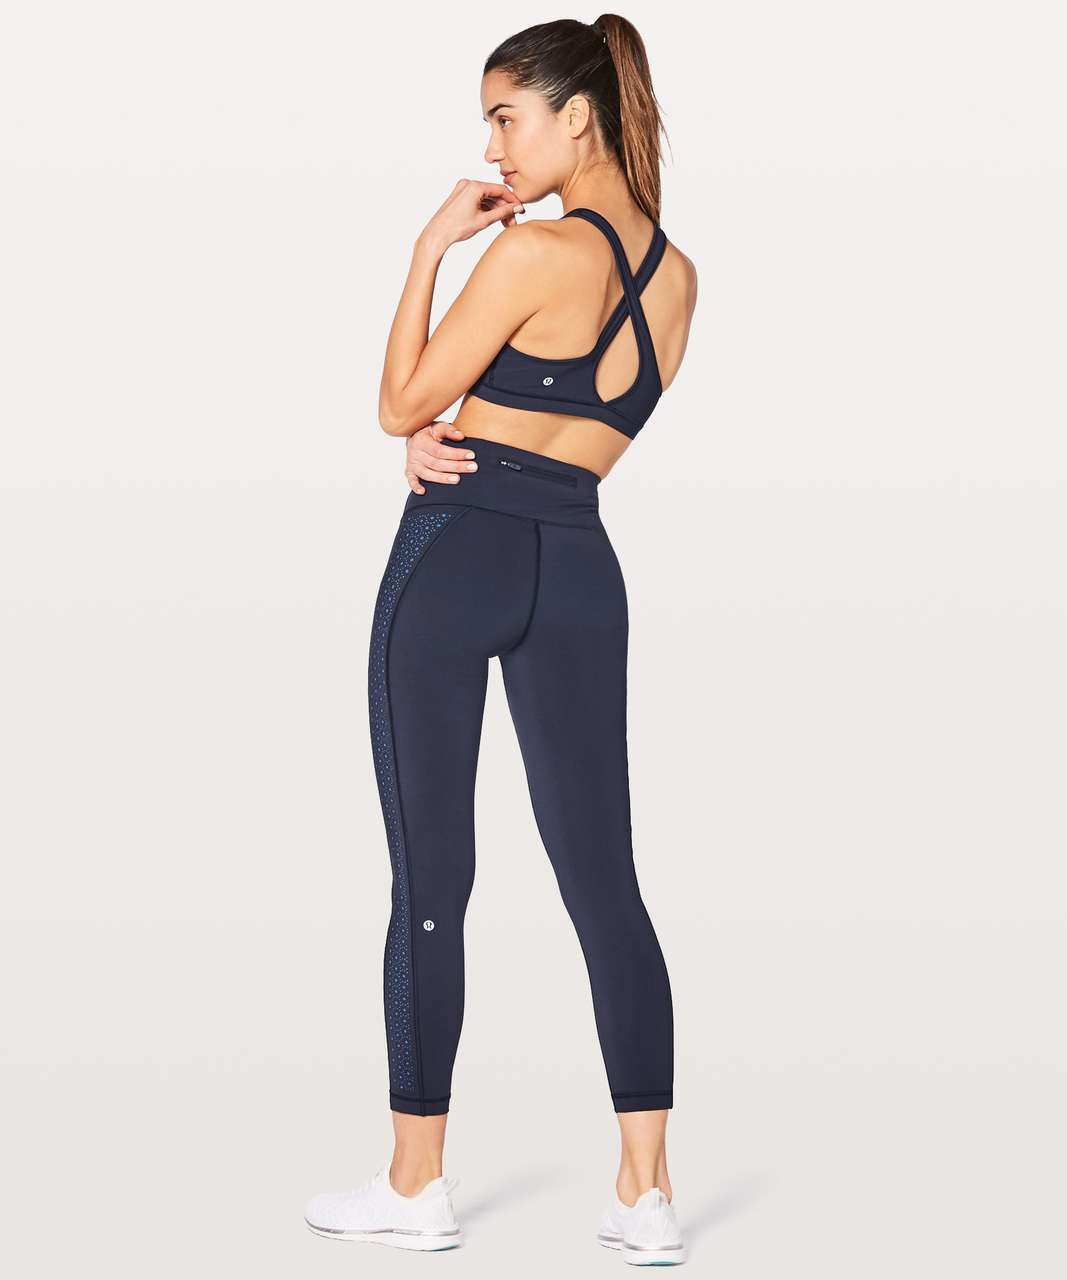 "Lululemon Colour Me Quick 7/8 Tight 25"" - Midnight Navy / Blazer Blue"